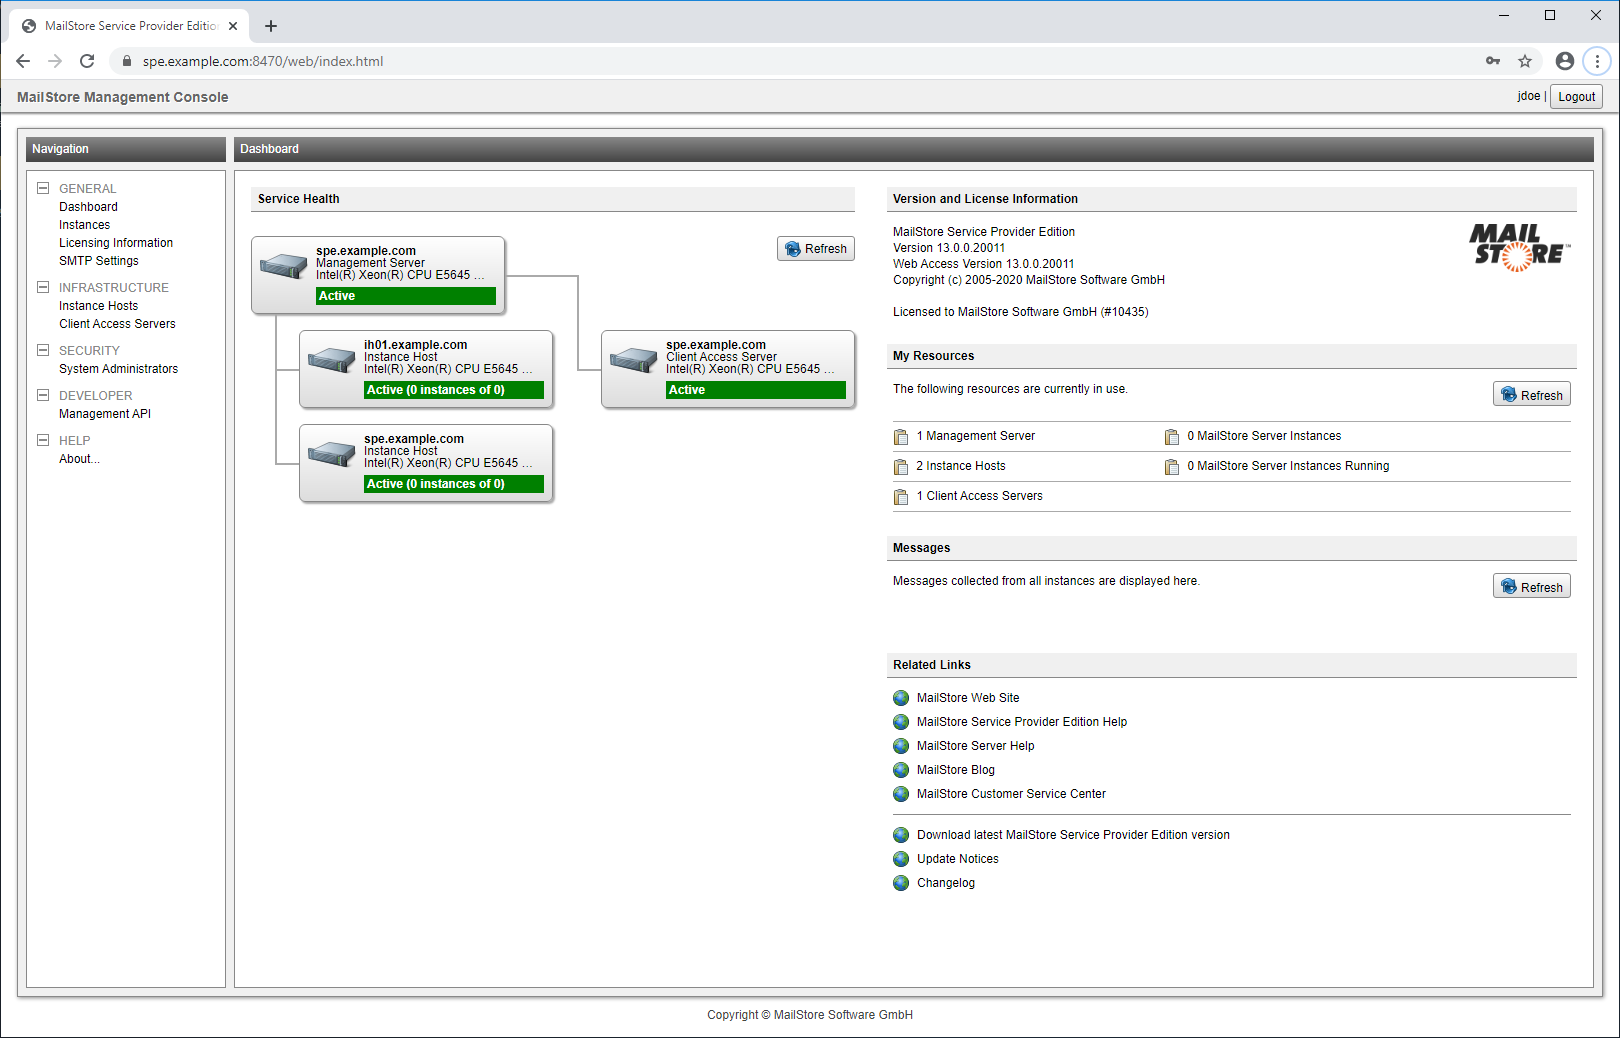 Screenshot from the MailStore Service Provider Edition Dashboard